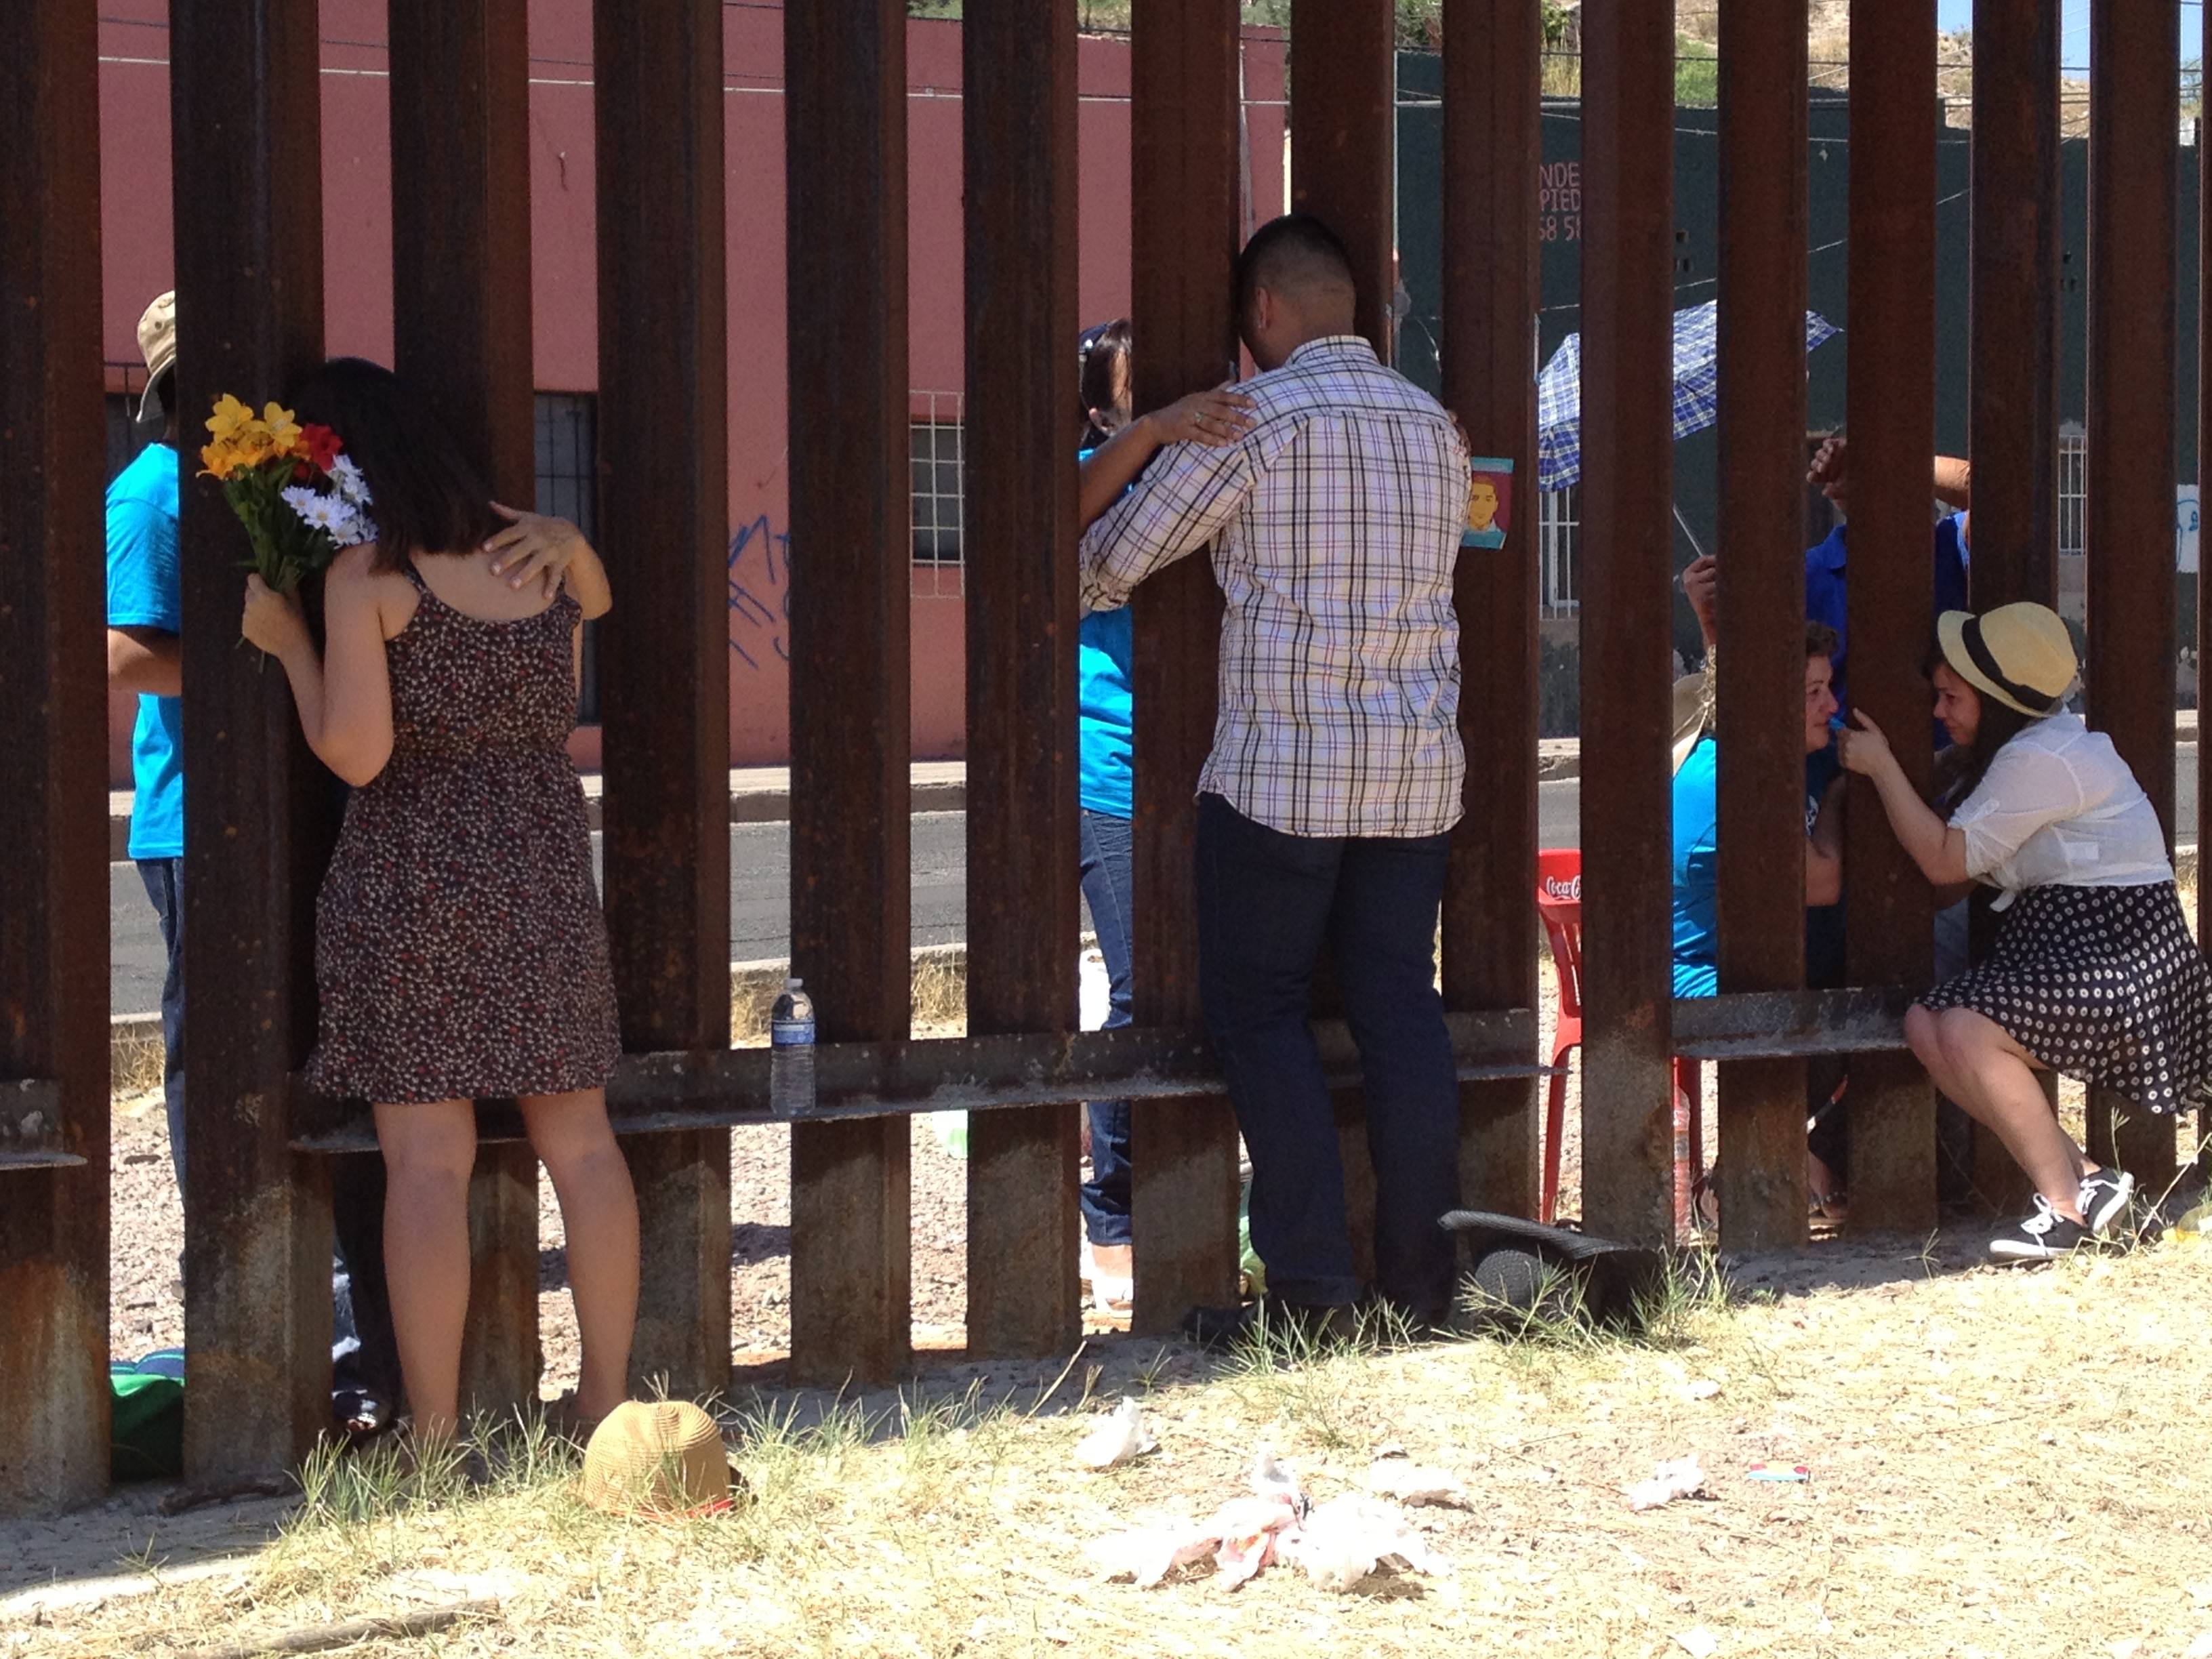 A bittersweet reunion lets three young immigrants see - and reach for - their deported mothers through a fence while organizers and reporters look on.